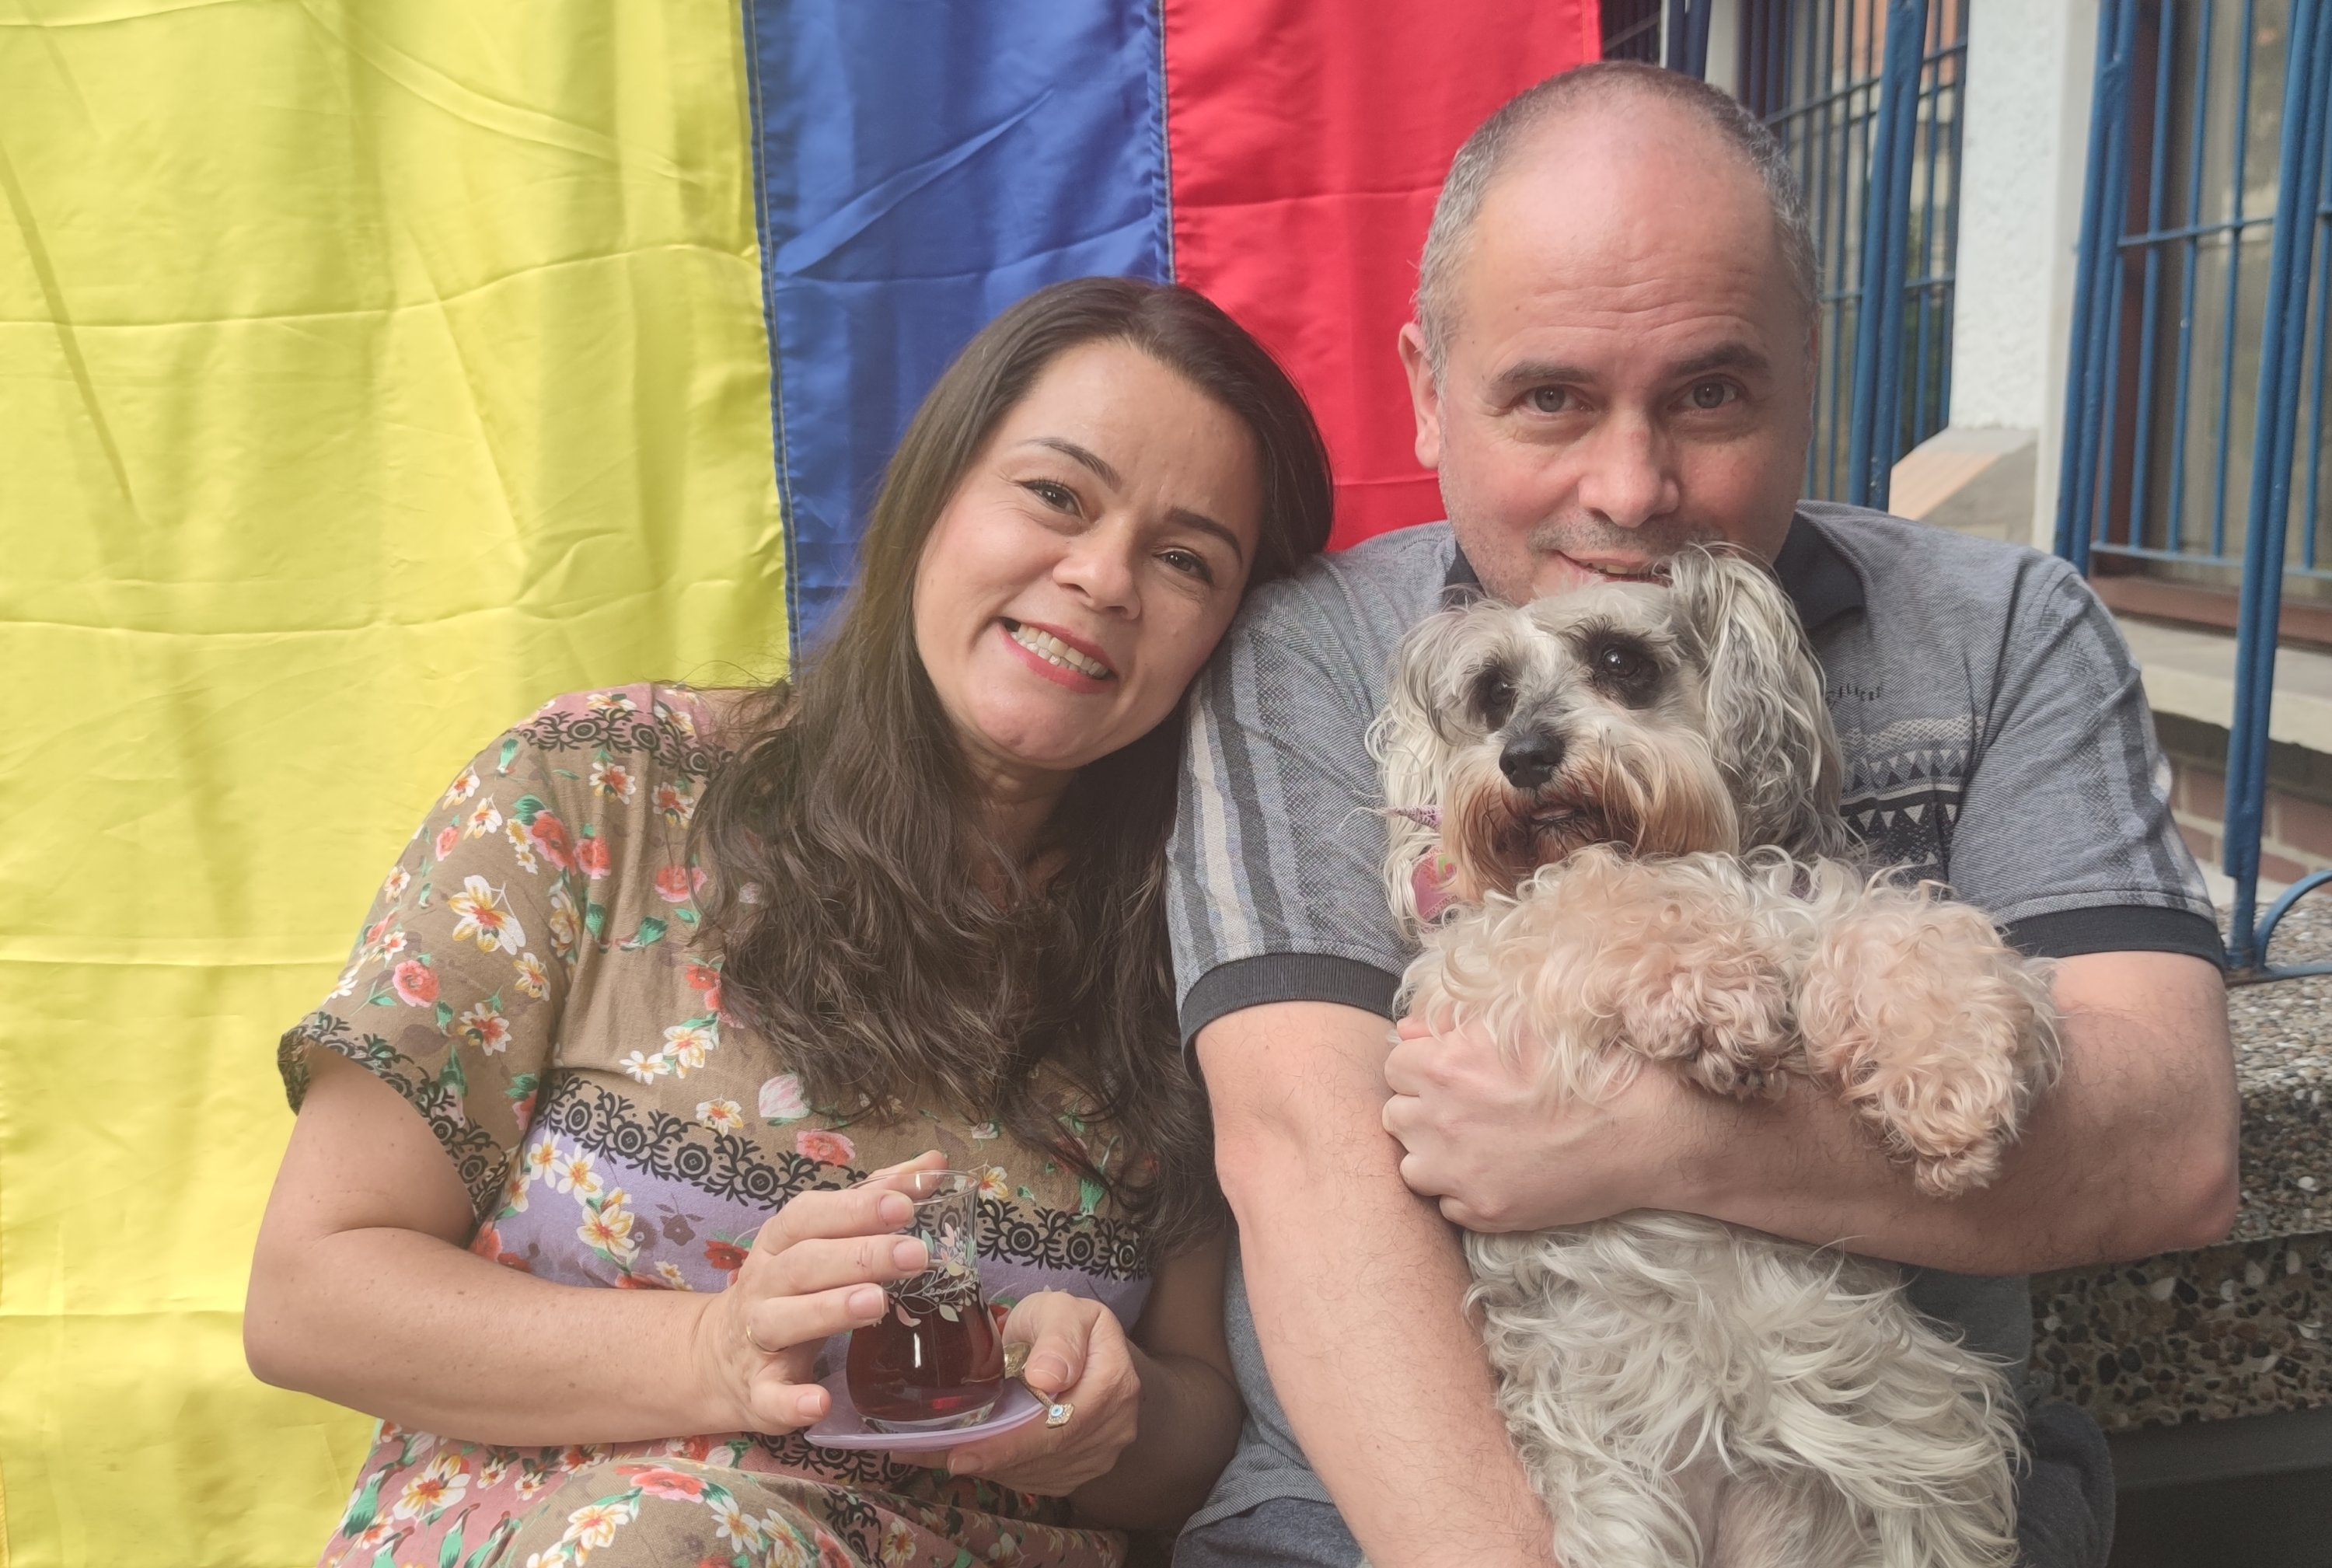 Dioni Martinez (L) poses with her husband and their dog, holding a glass of Turkish tea in their house in Medellin, Colombia, July 3, 2021. (AA Photo)